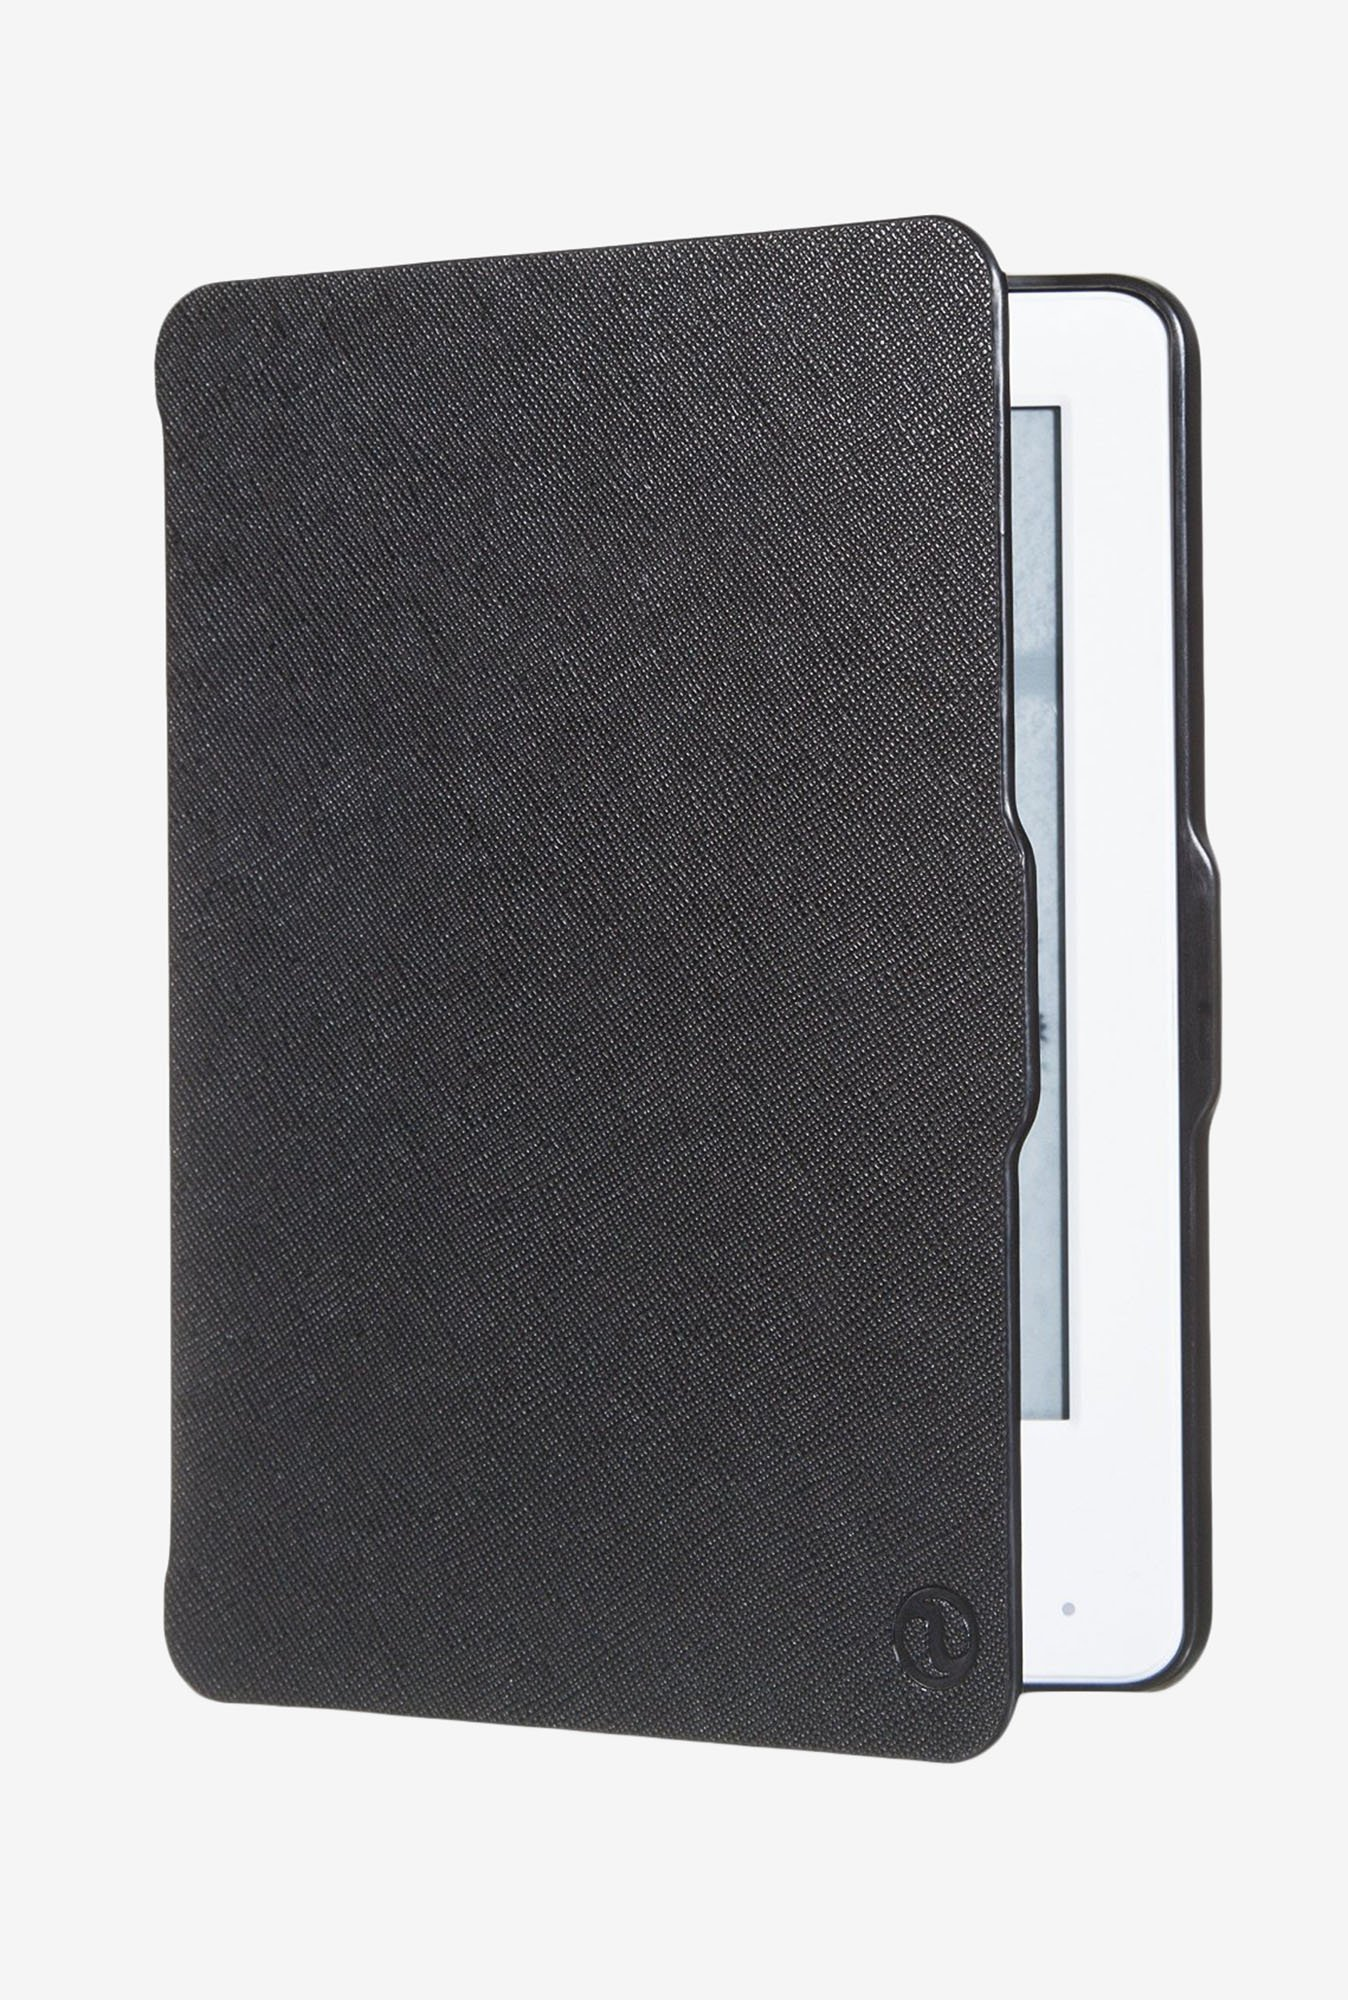 NuPro Slim Fitted Cover for Kindle (7th Generation) - Black